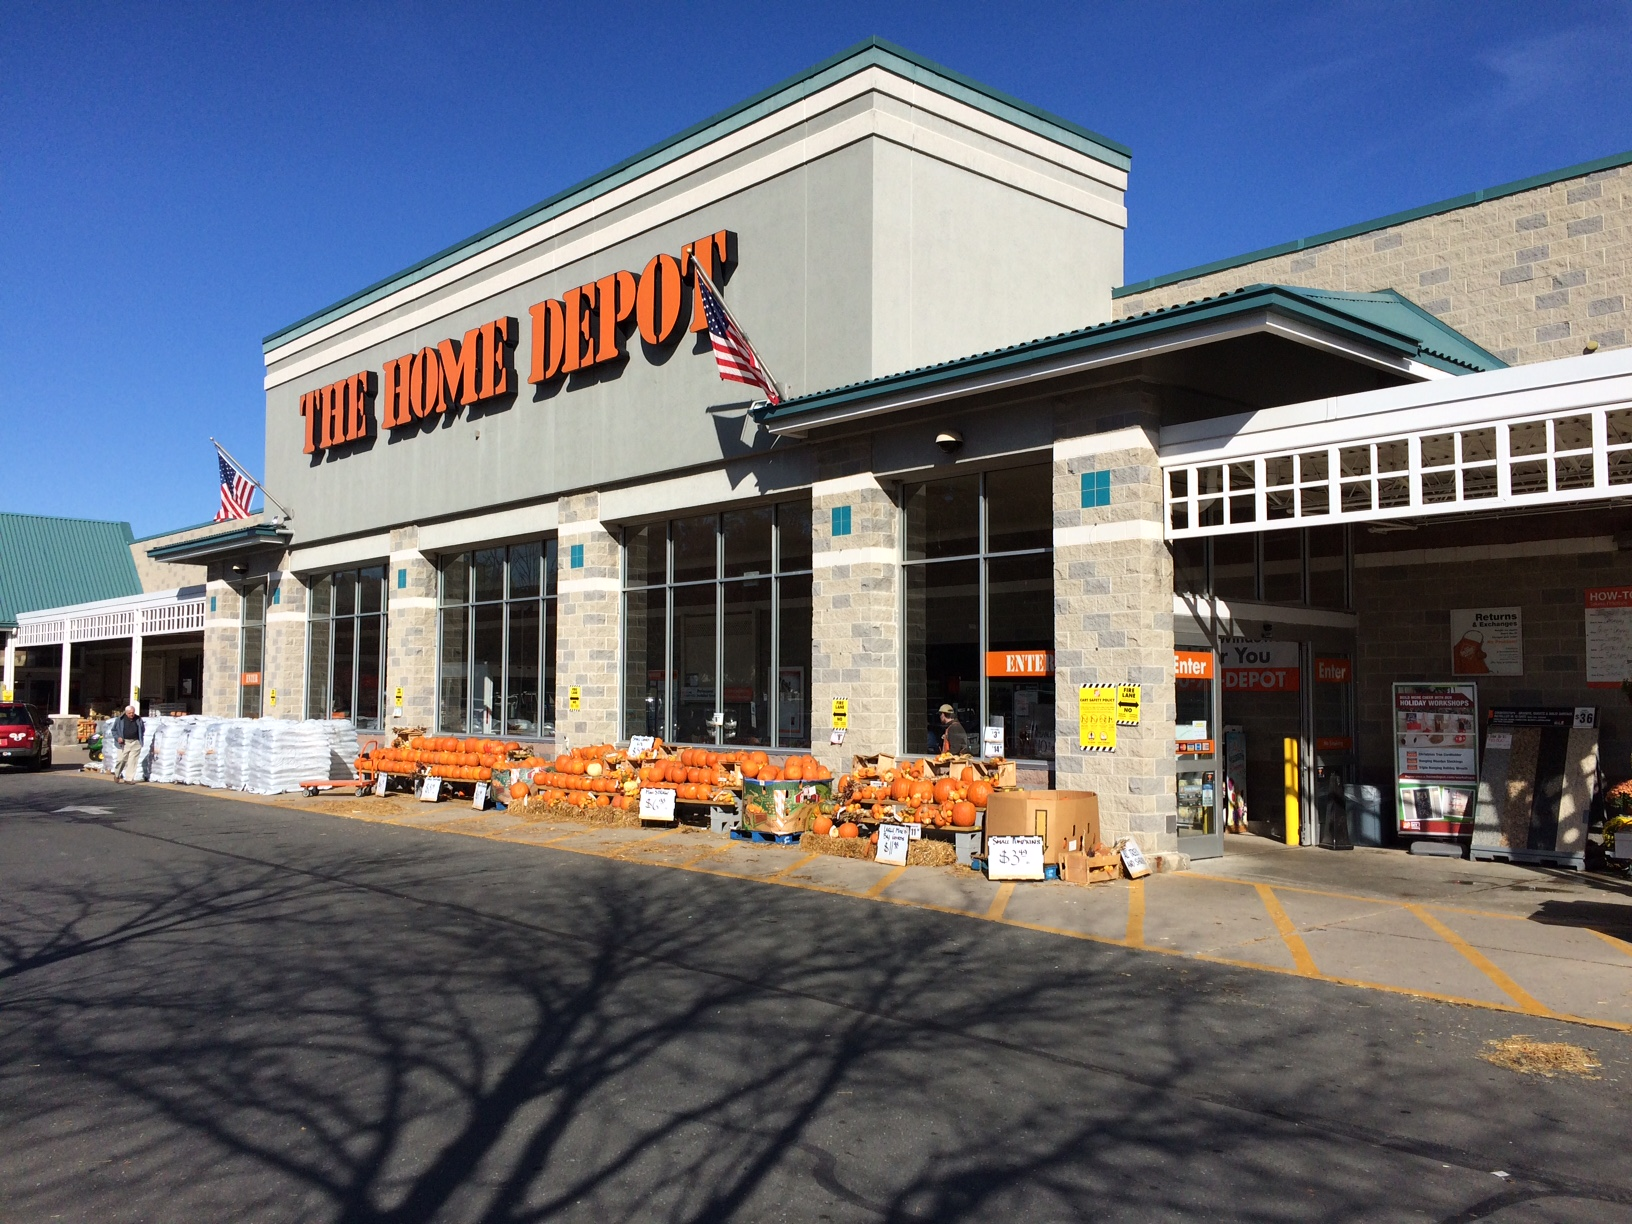 the home depot The home depot job search search for jobs at home depot and find a new position today we are hiring with new exciting careers, find one today.